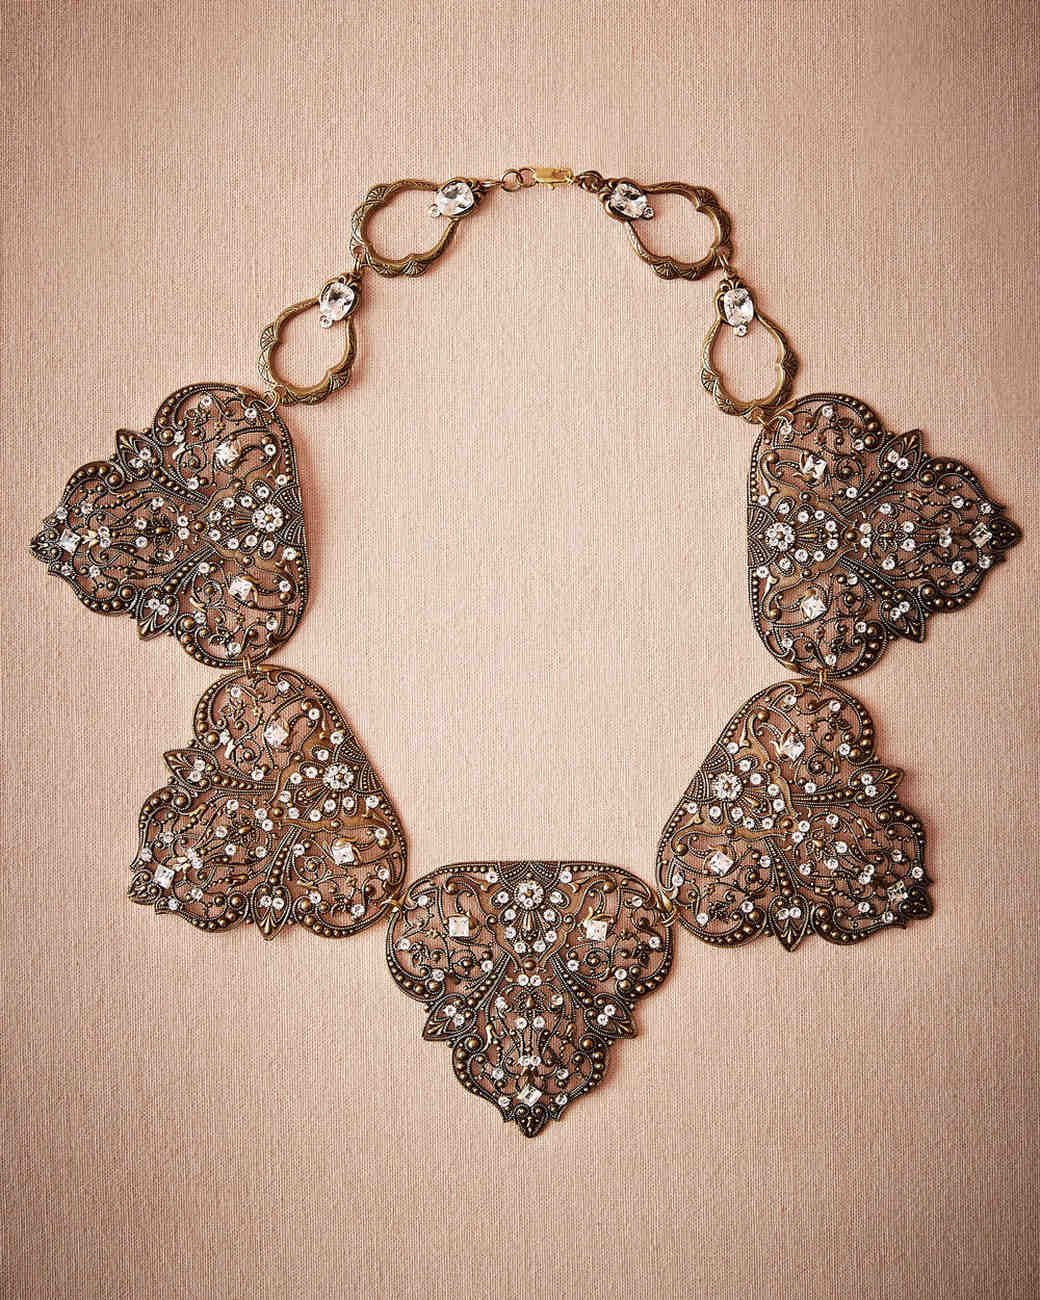 make-your-moh-stand-out-necklace-0316.jpg